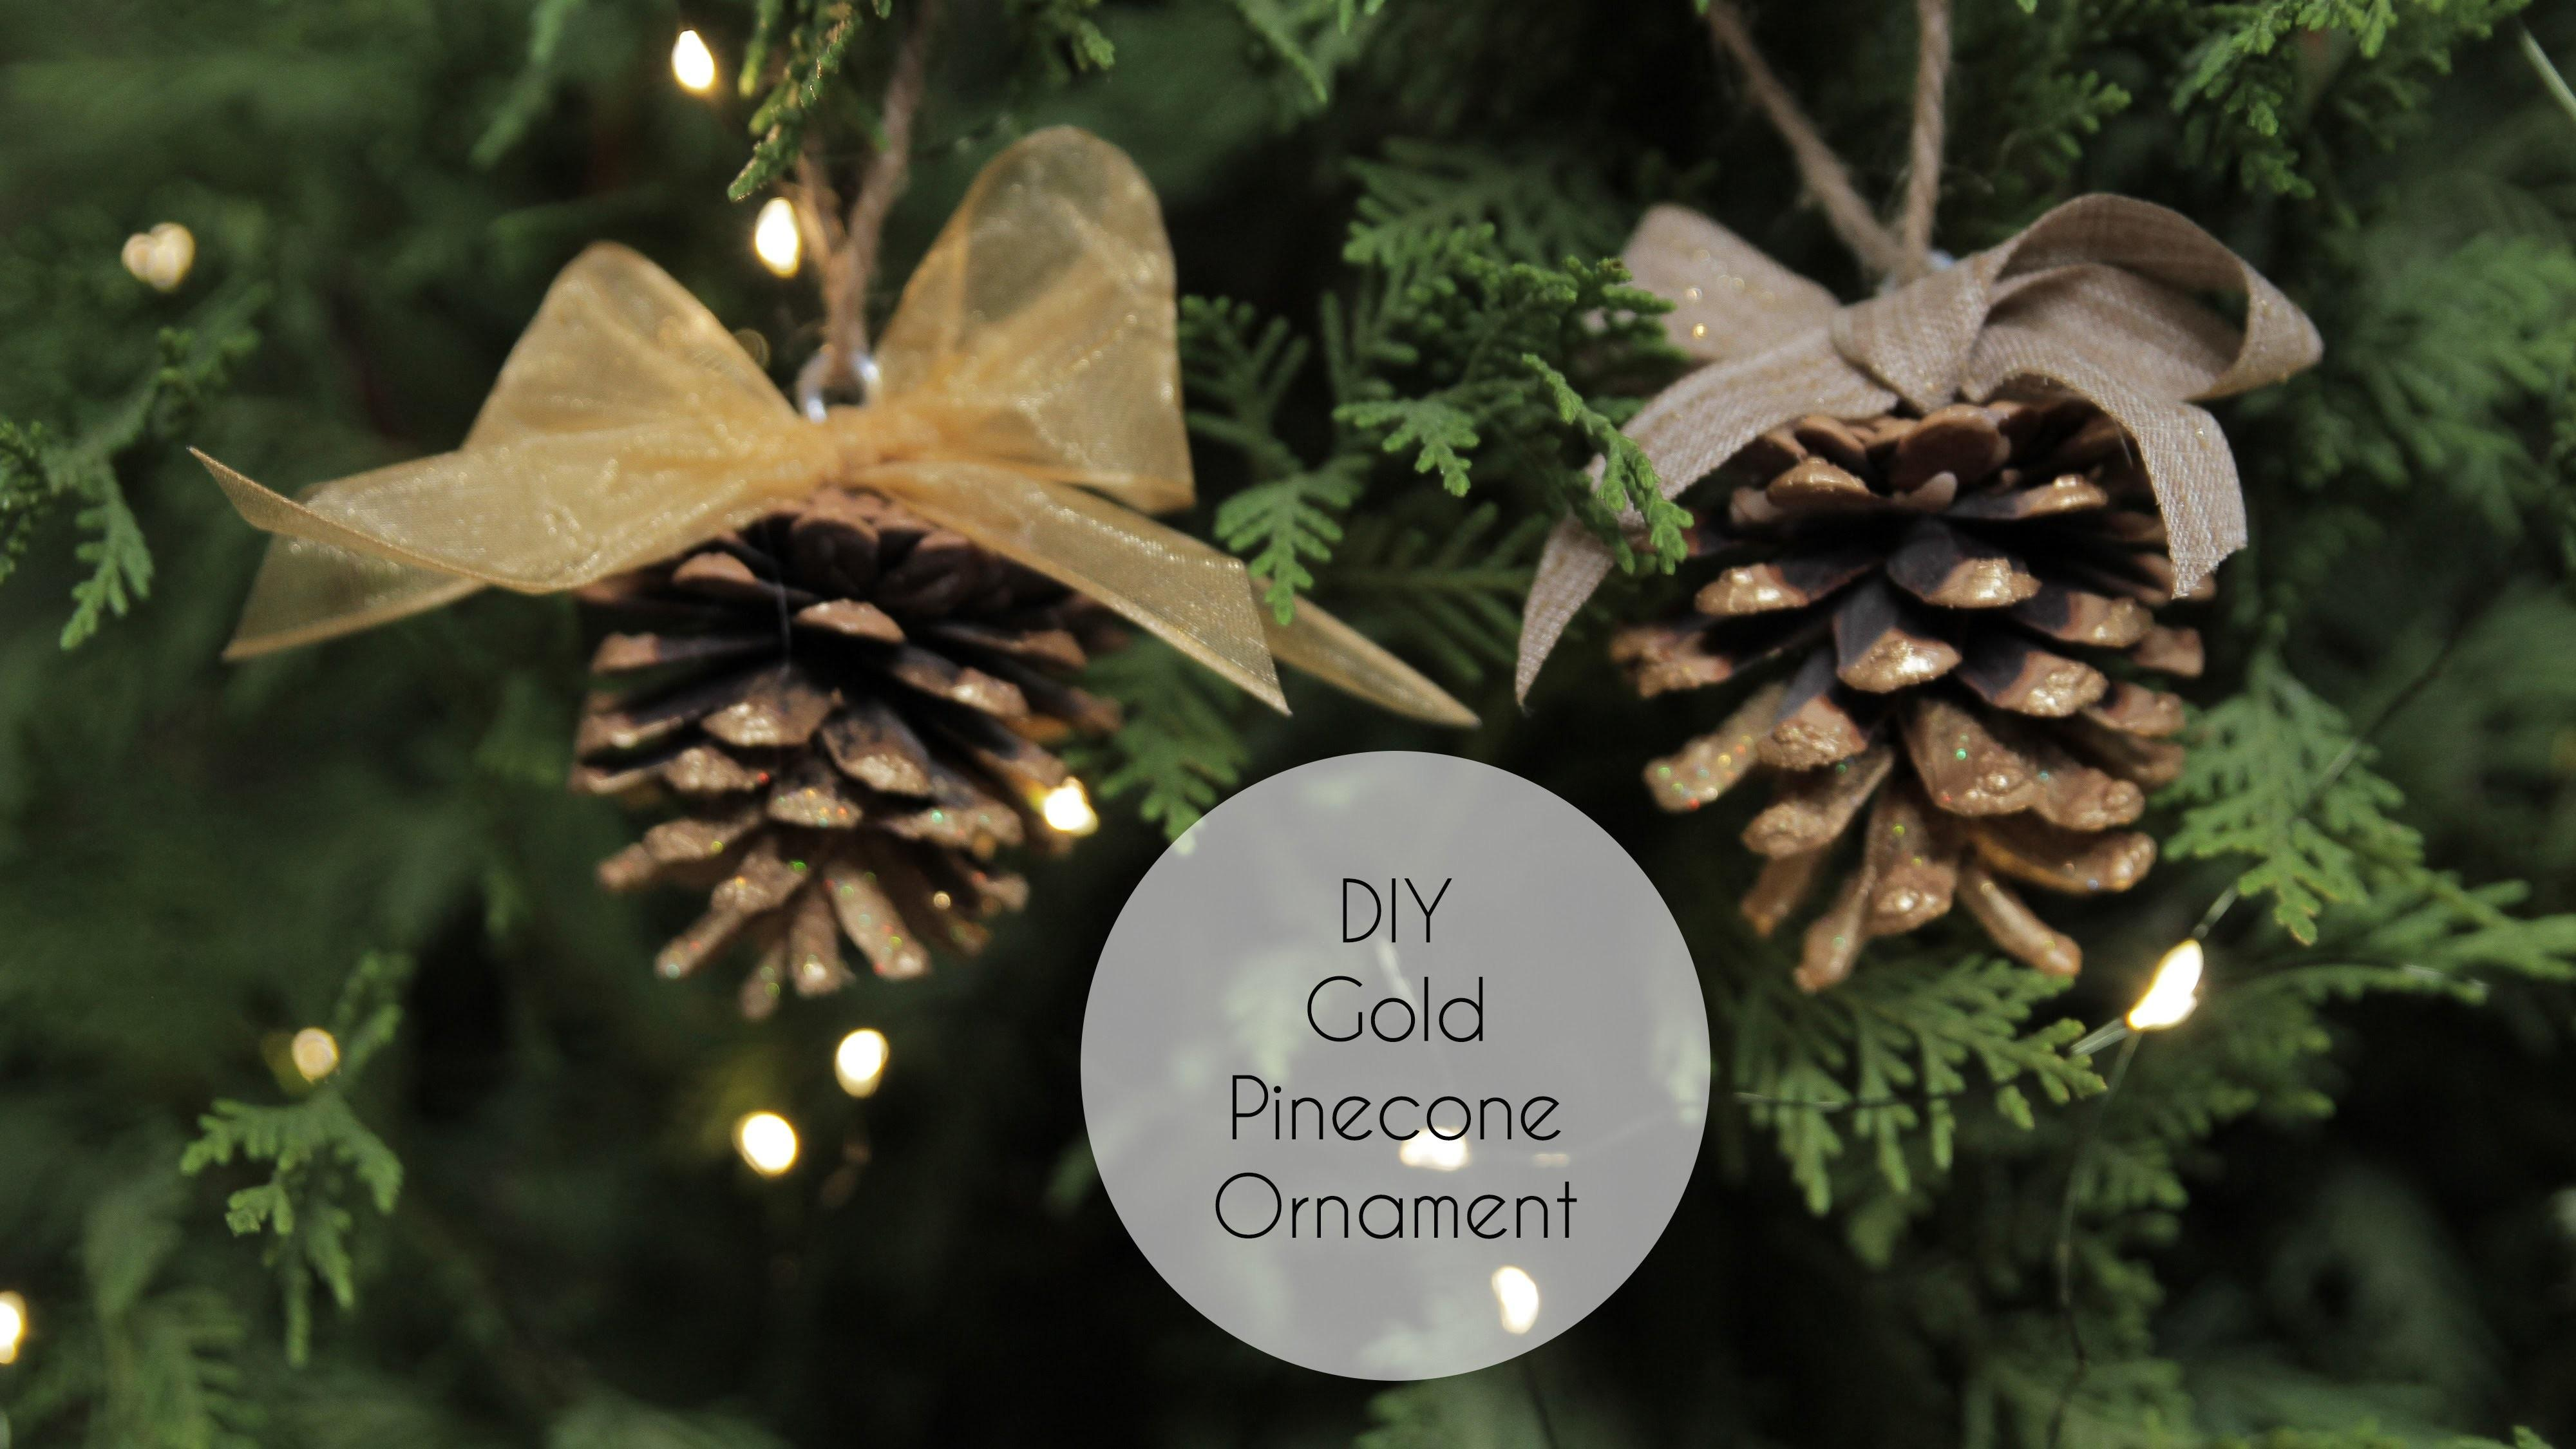 Diy Gold Pinecone Ornament